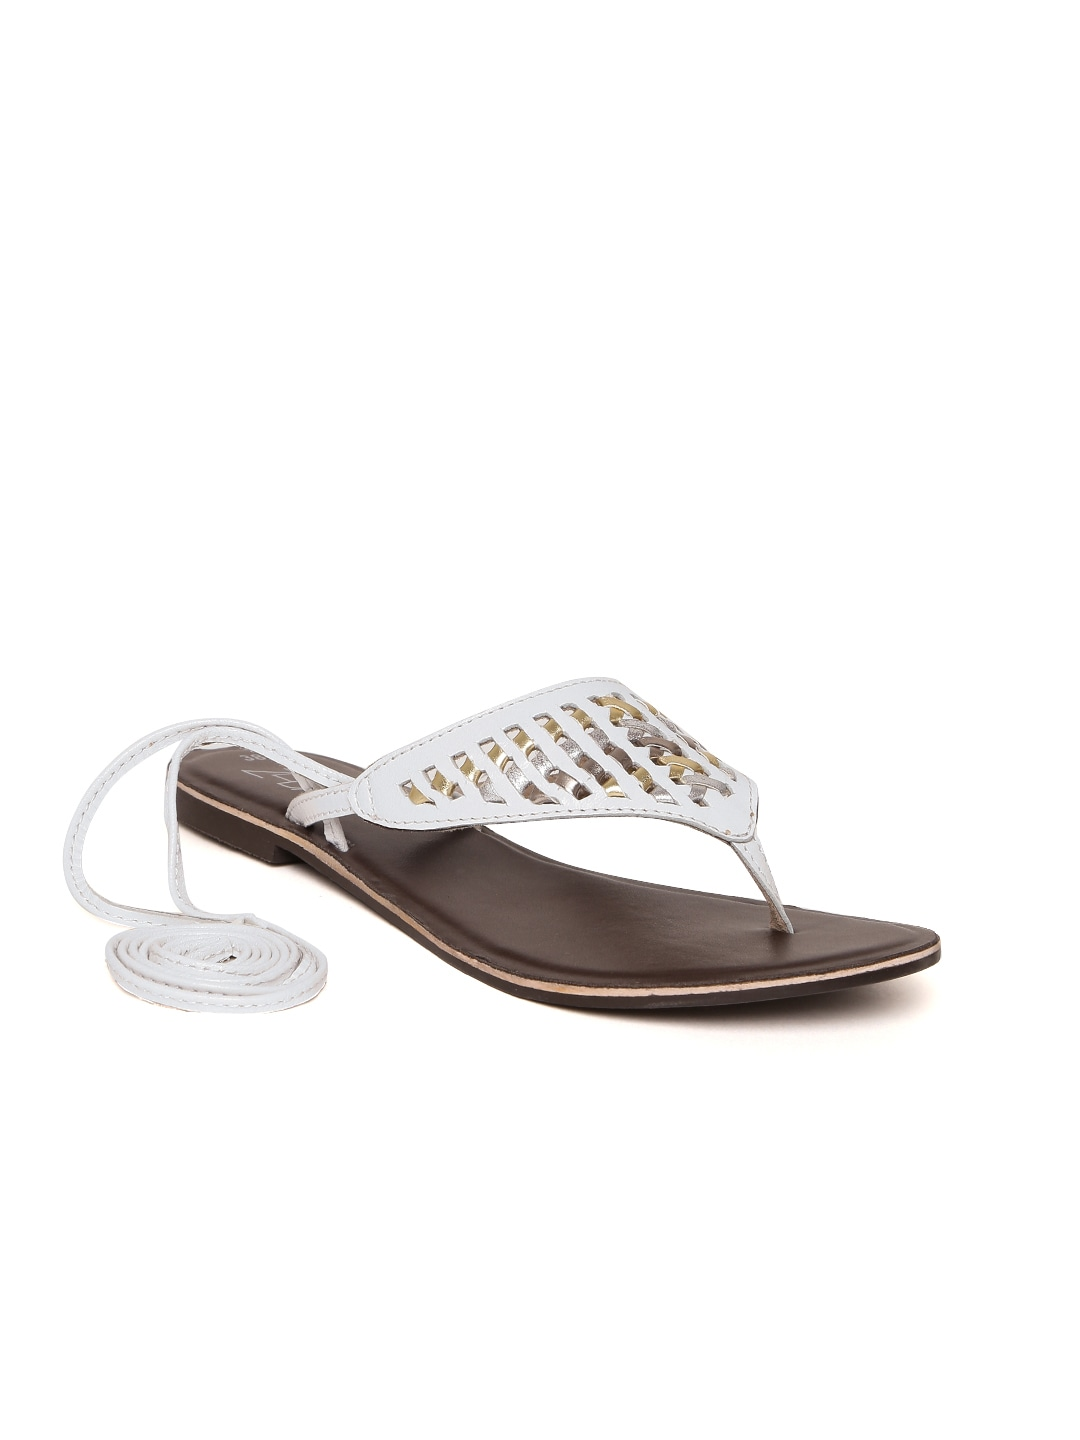 White Solid Leather Open Toe Flats